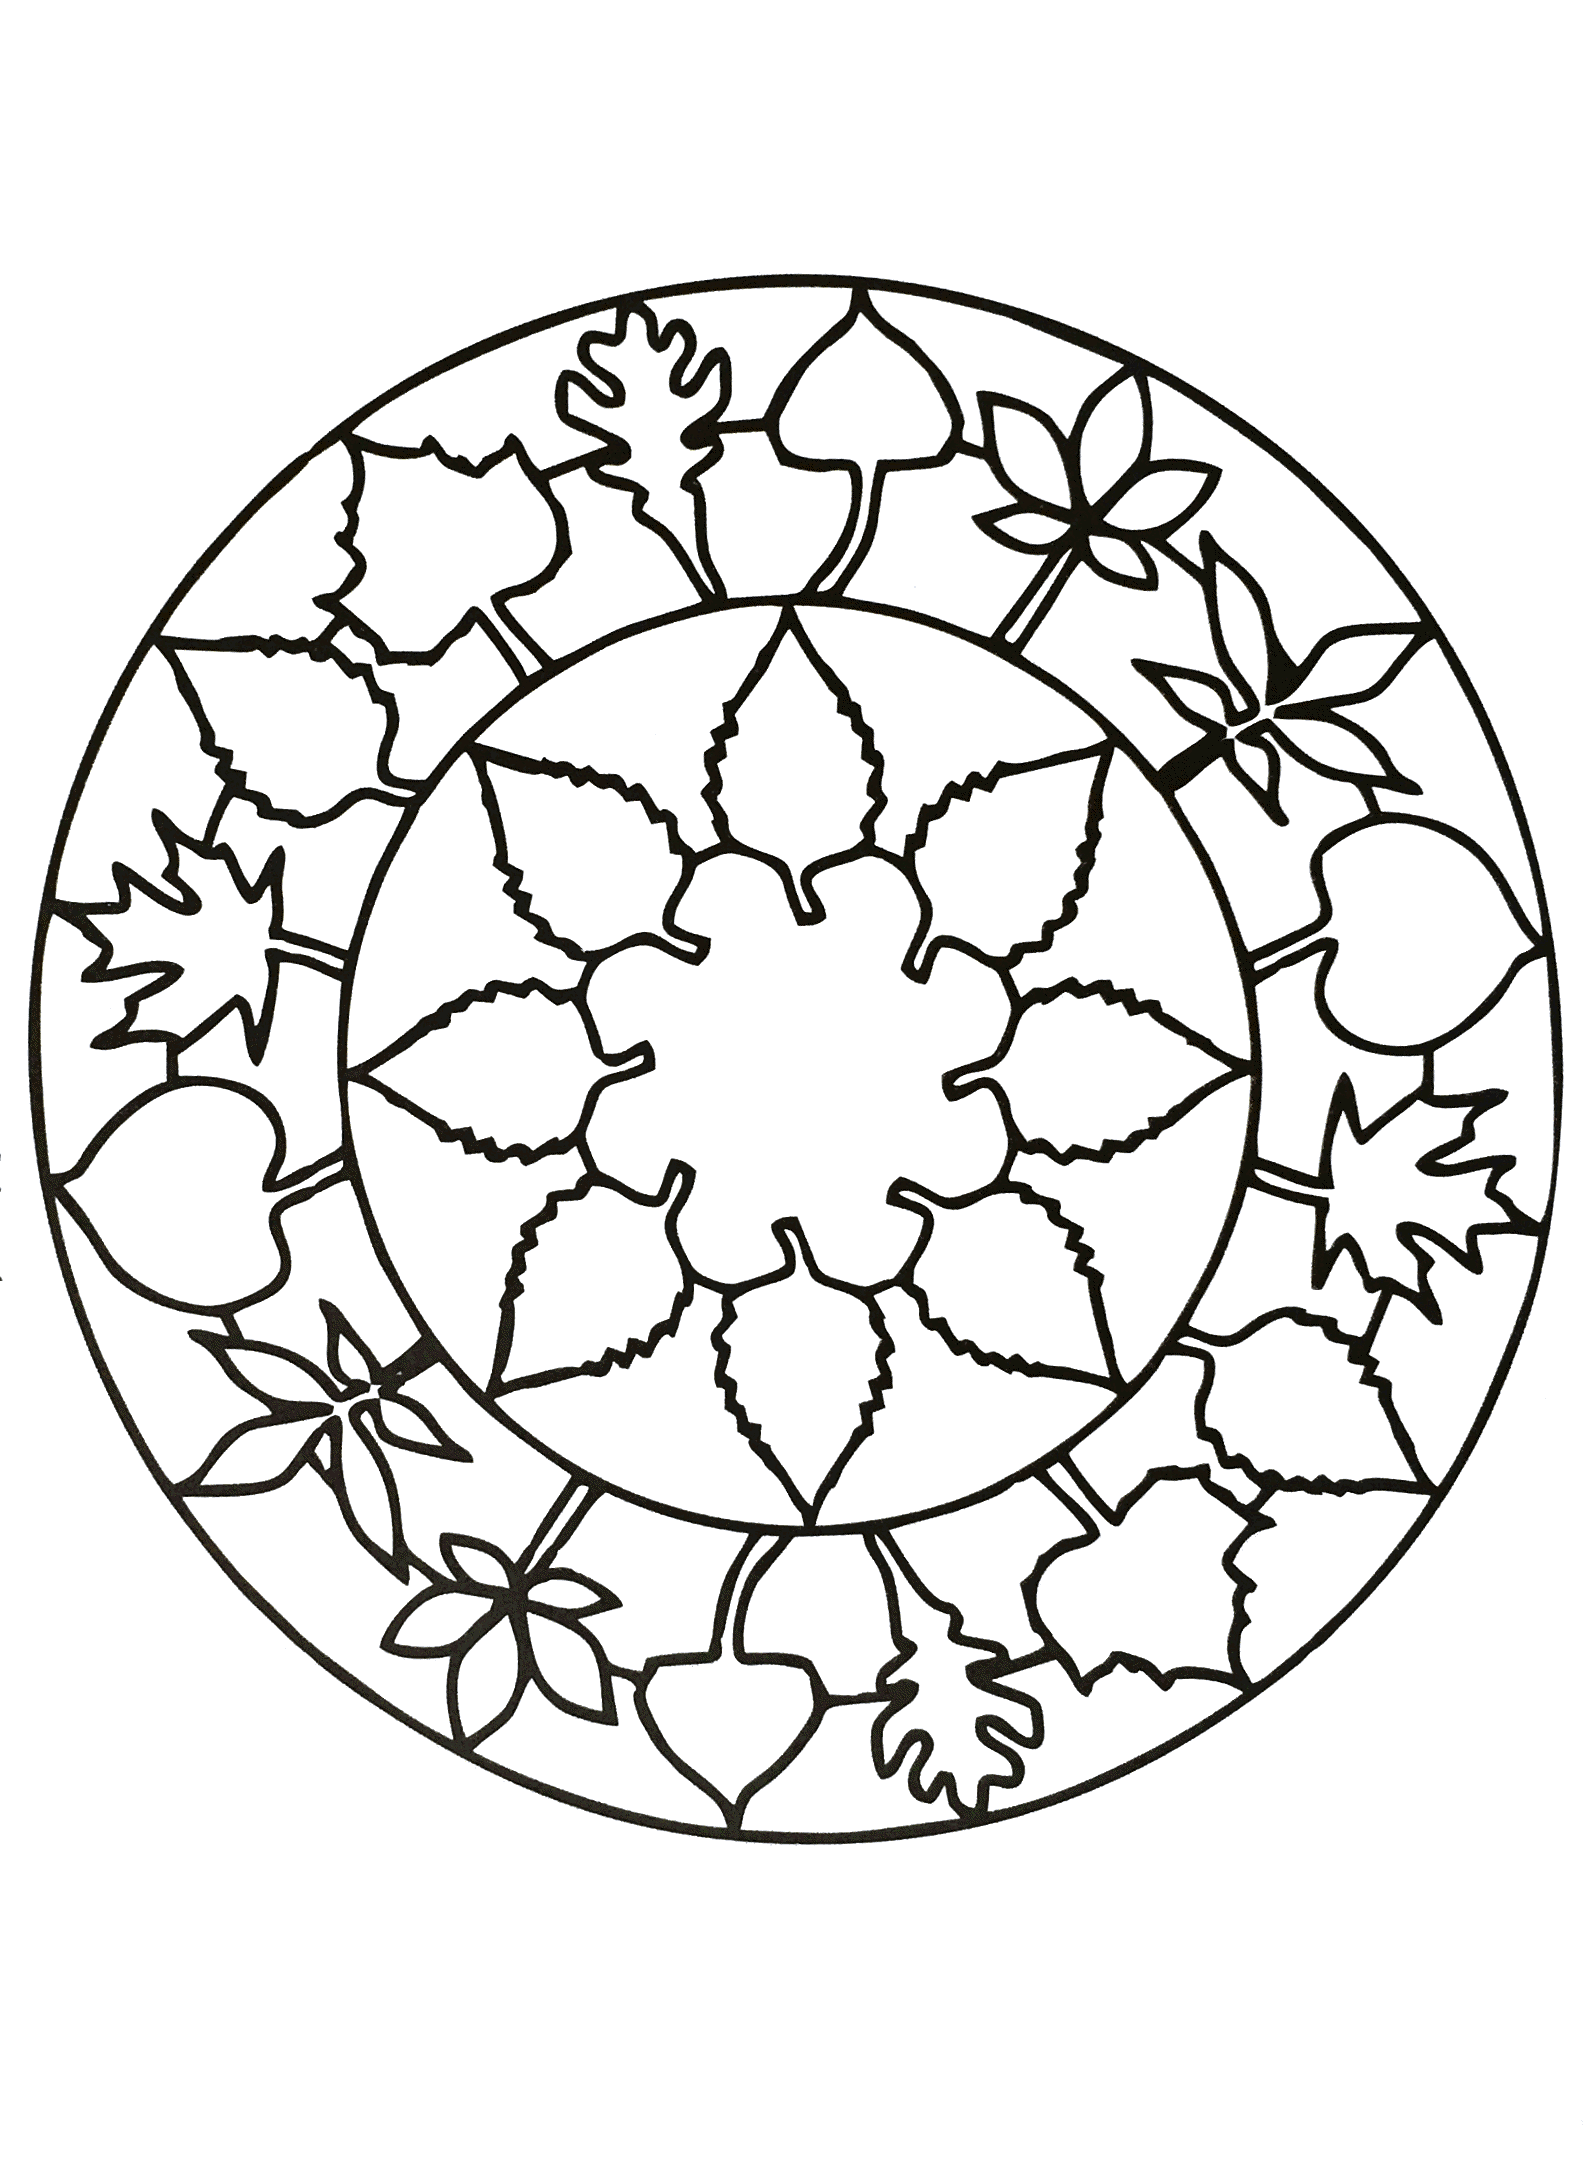 Simple mandala 75 - M&alas Coloring pages for kids to print & color